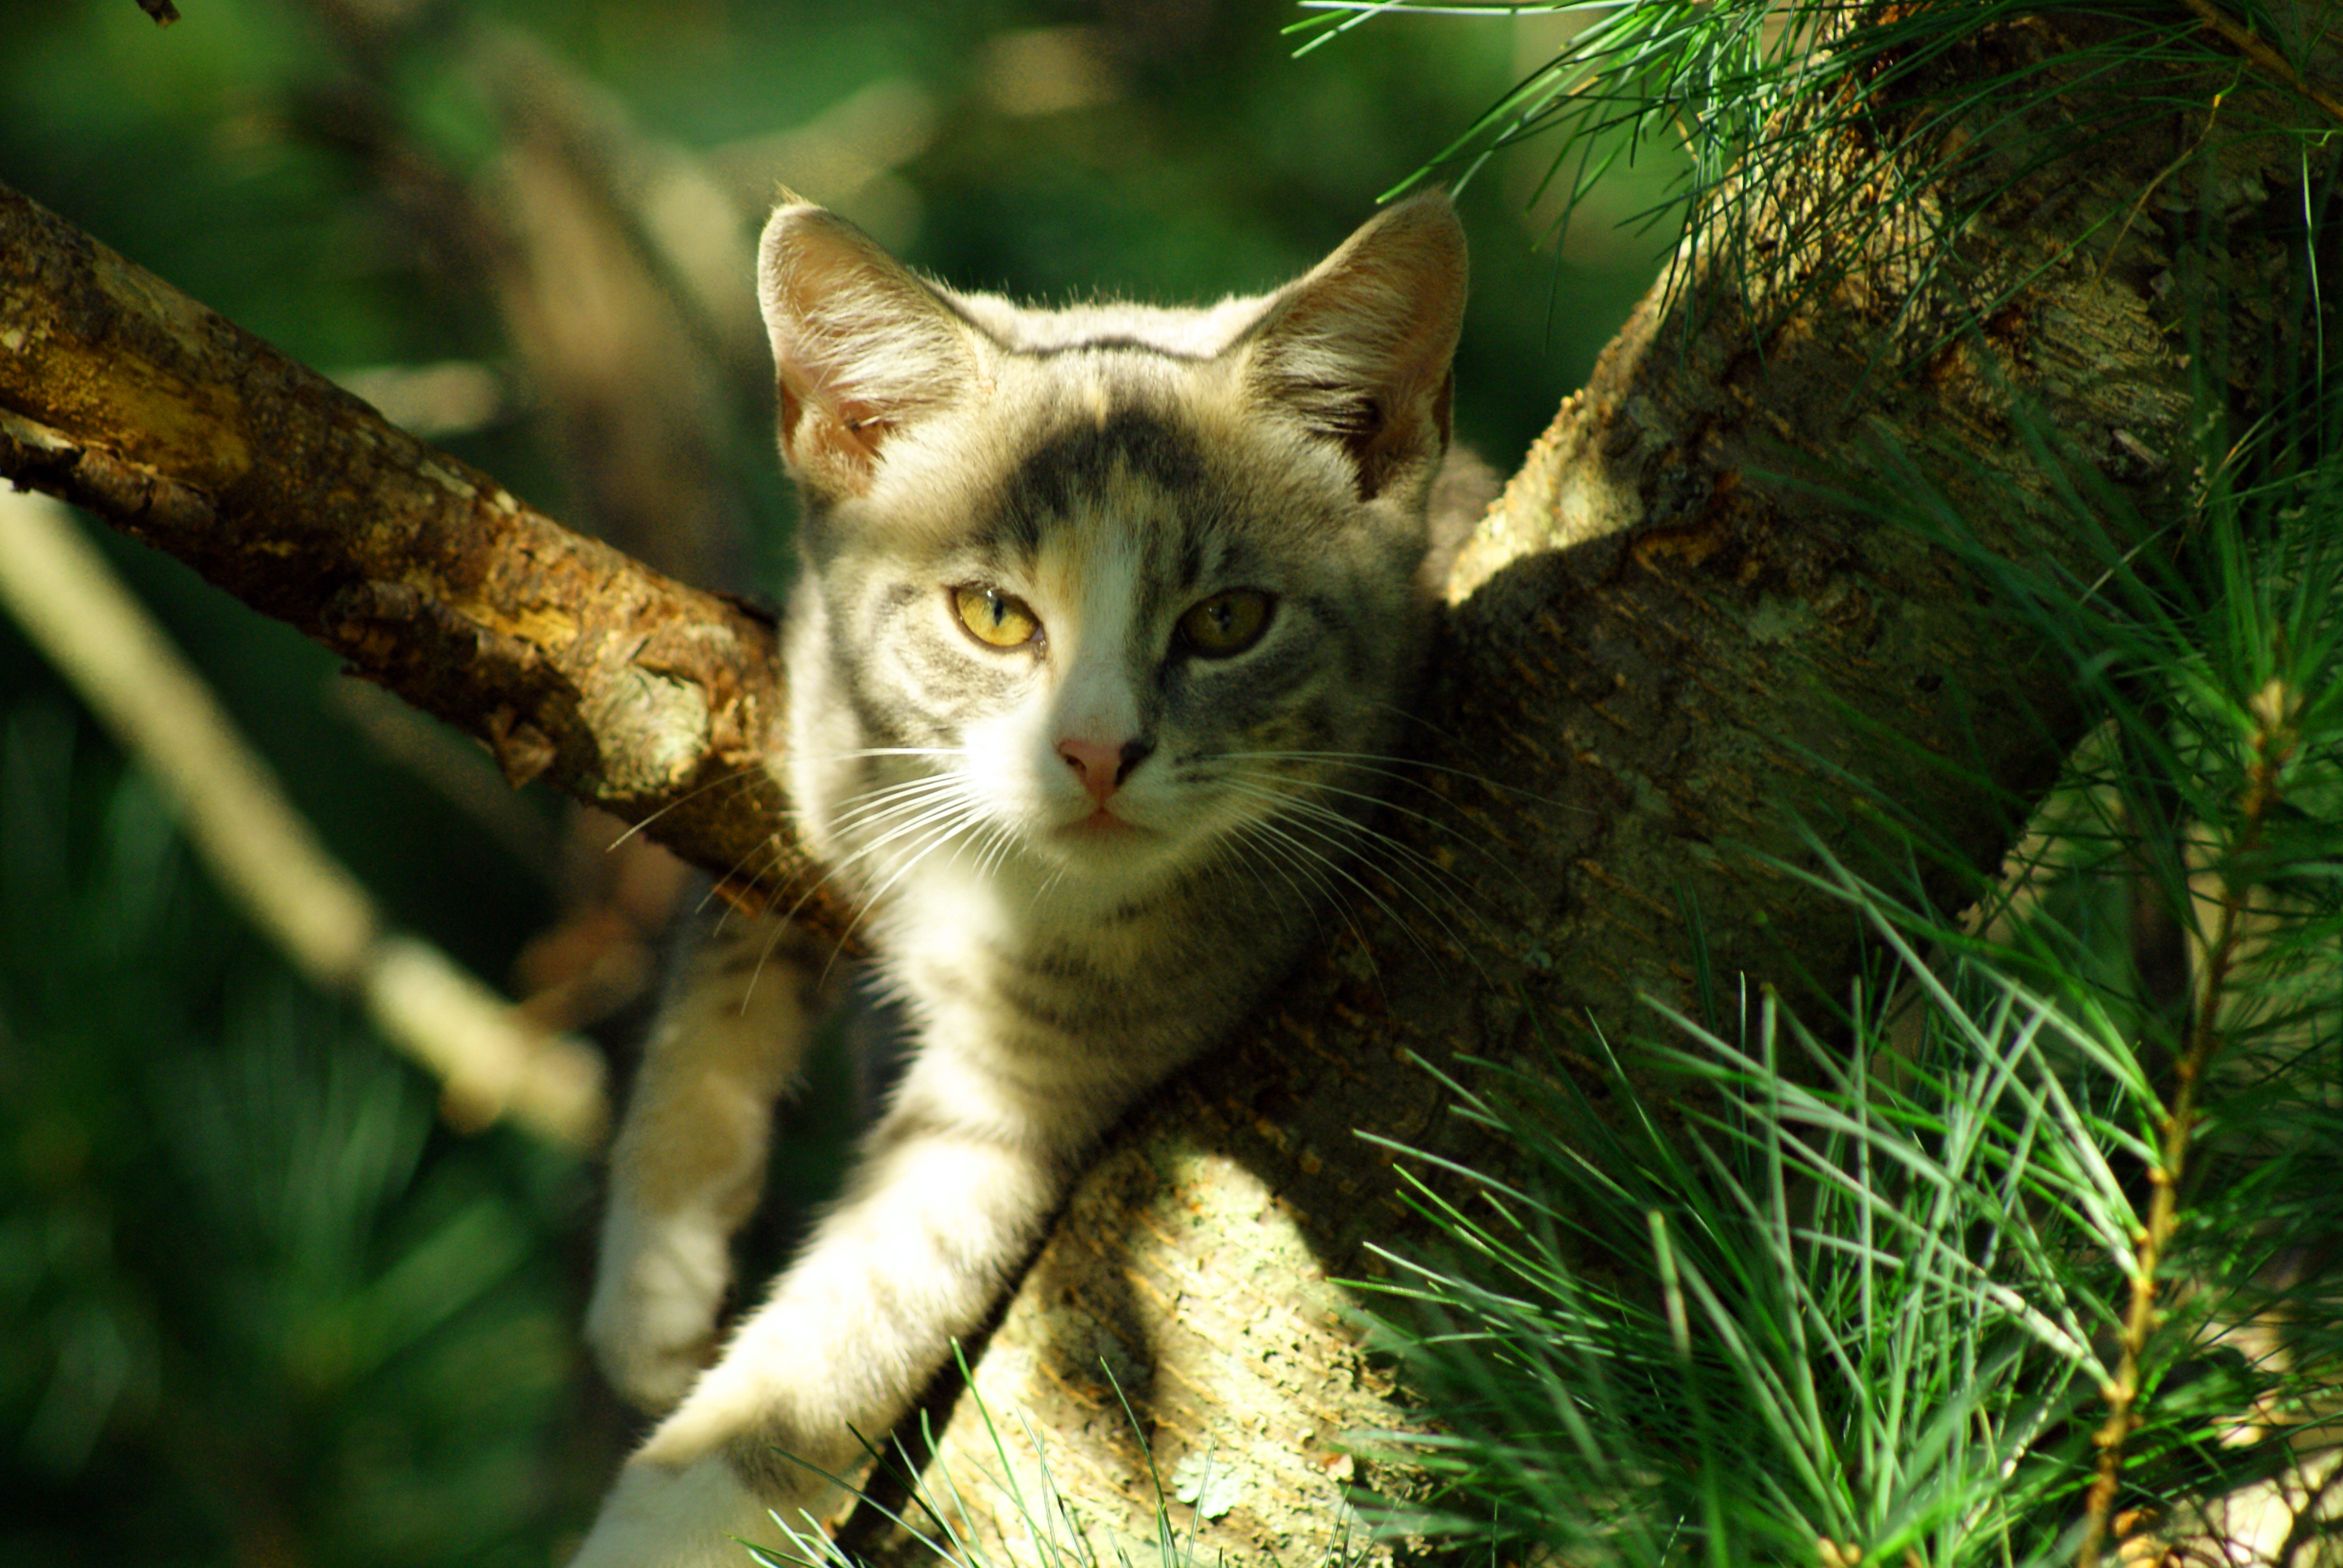 Cat In Tree, Adorable, Rescue, Leaves, Little, HQ Photo